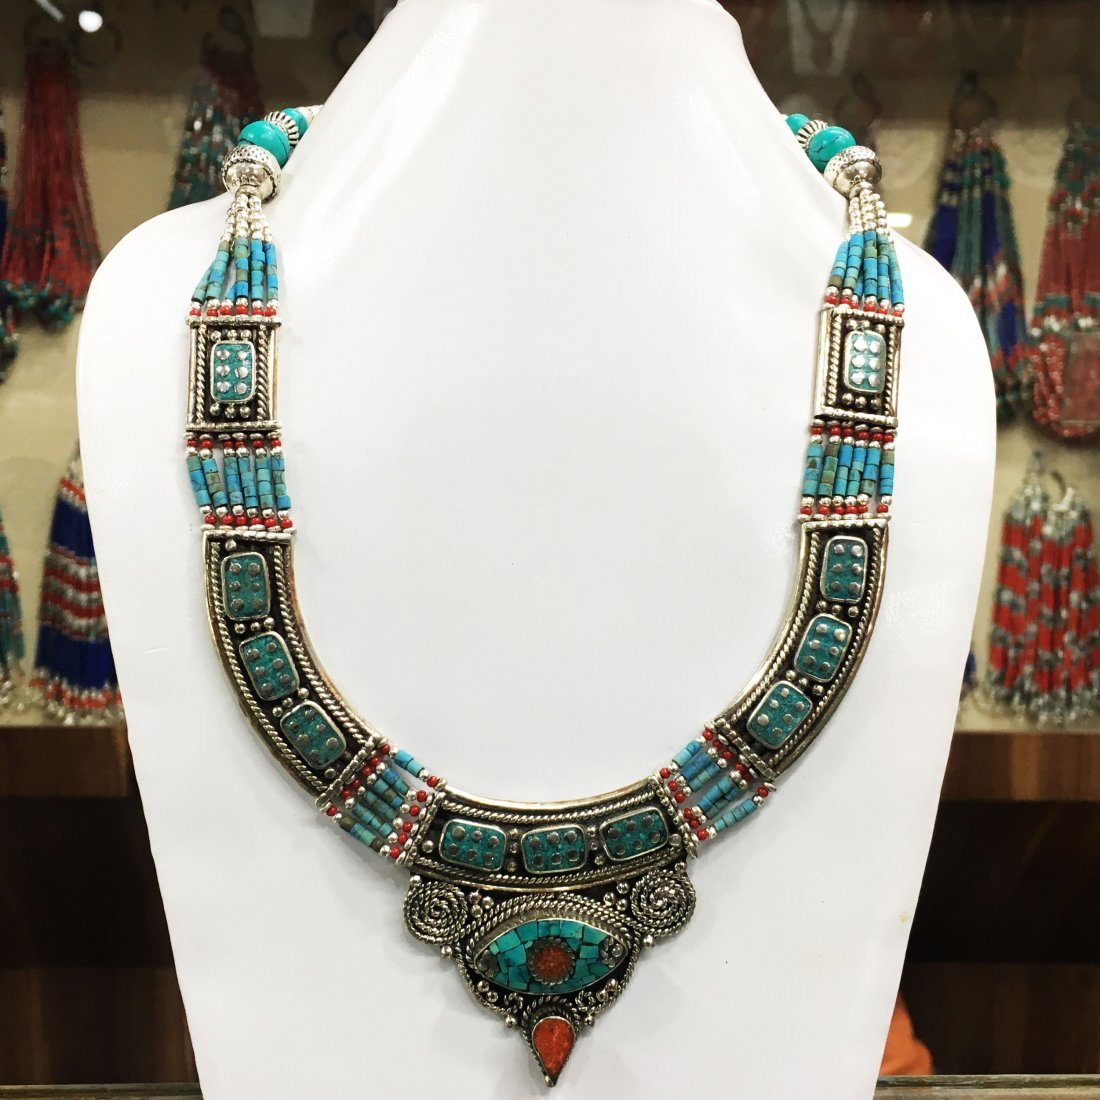 Turquoise & Coral Beads Handmade Necklace